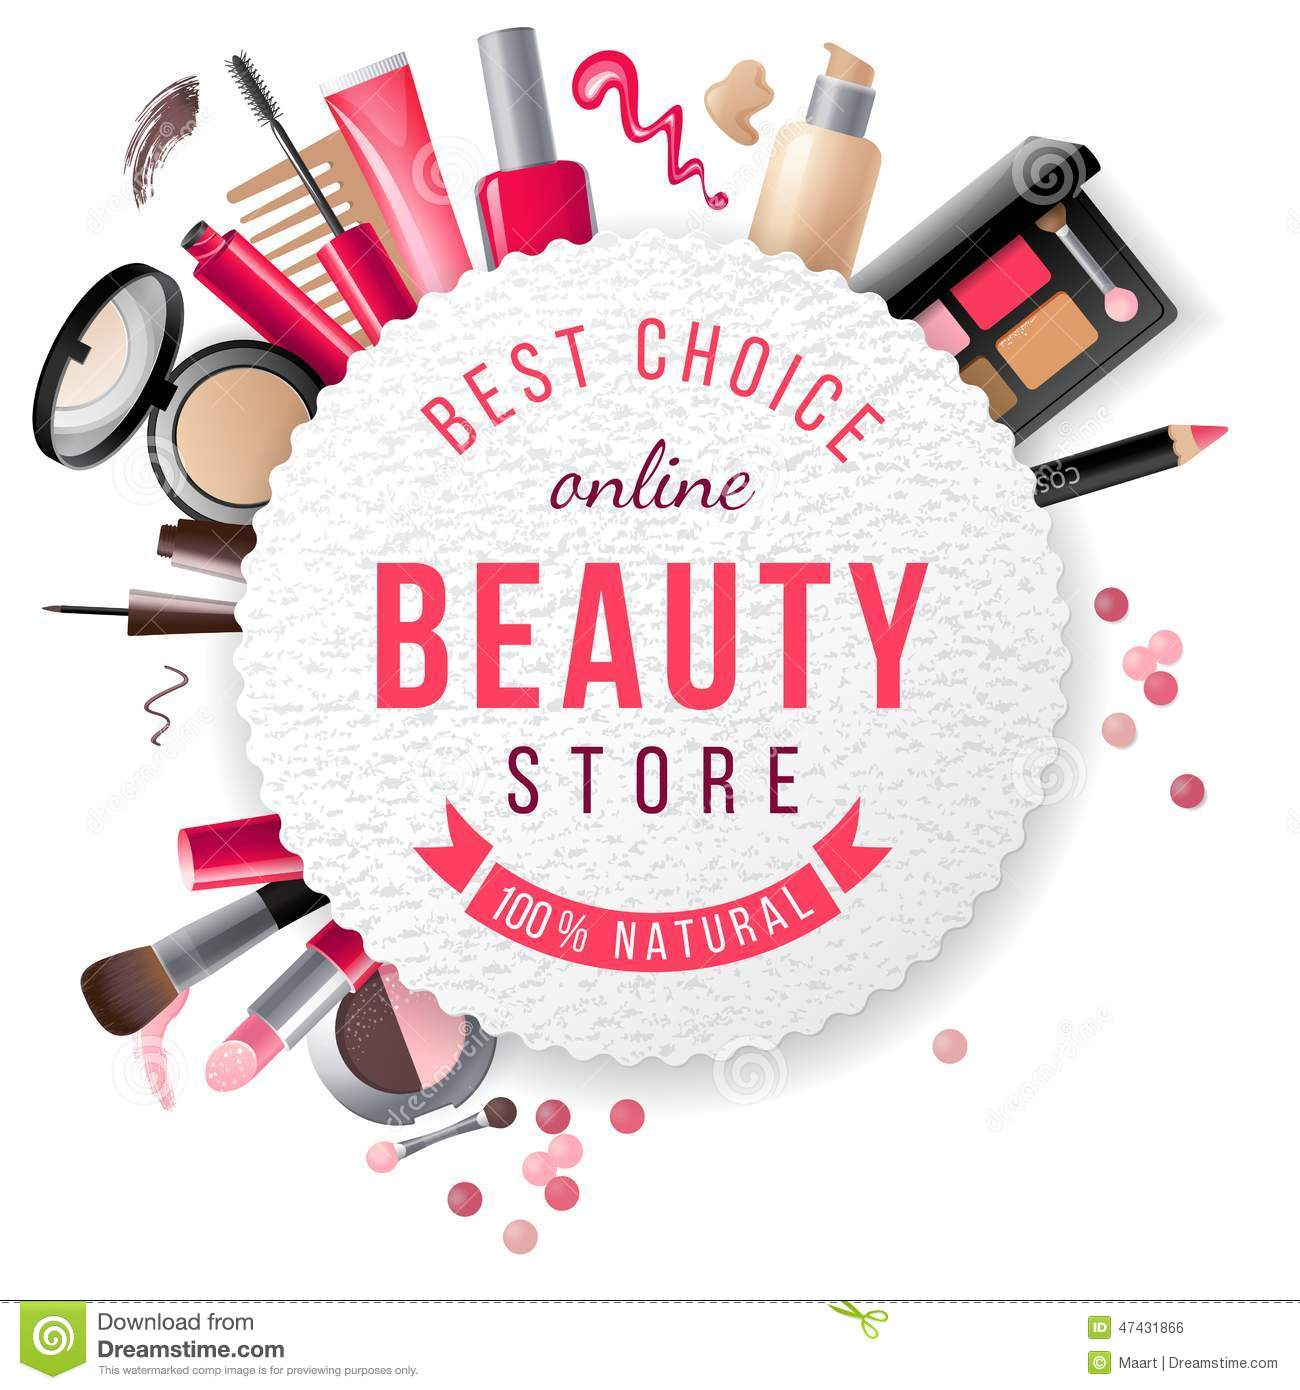 Beauty Store Emblem With Type Design And Cosmetics Royalty Free Stock Image